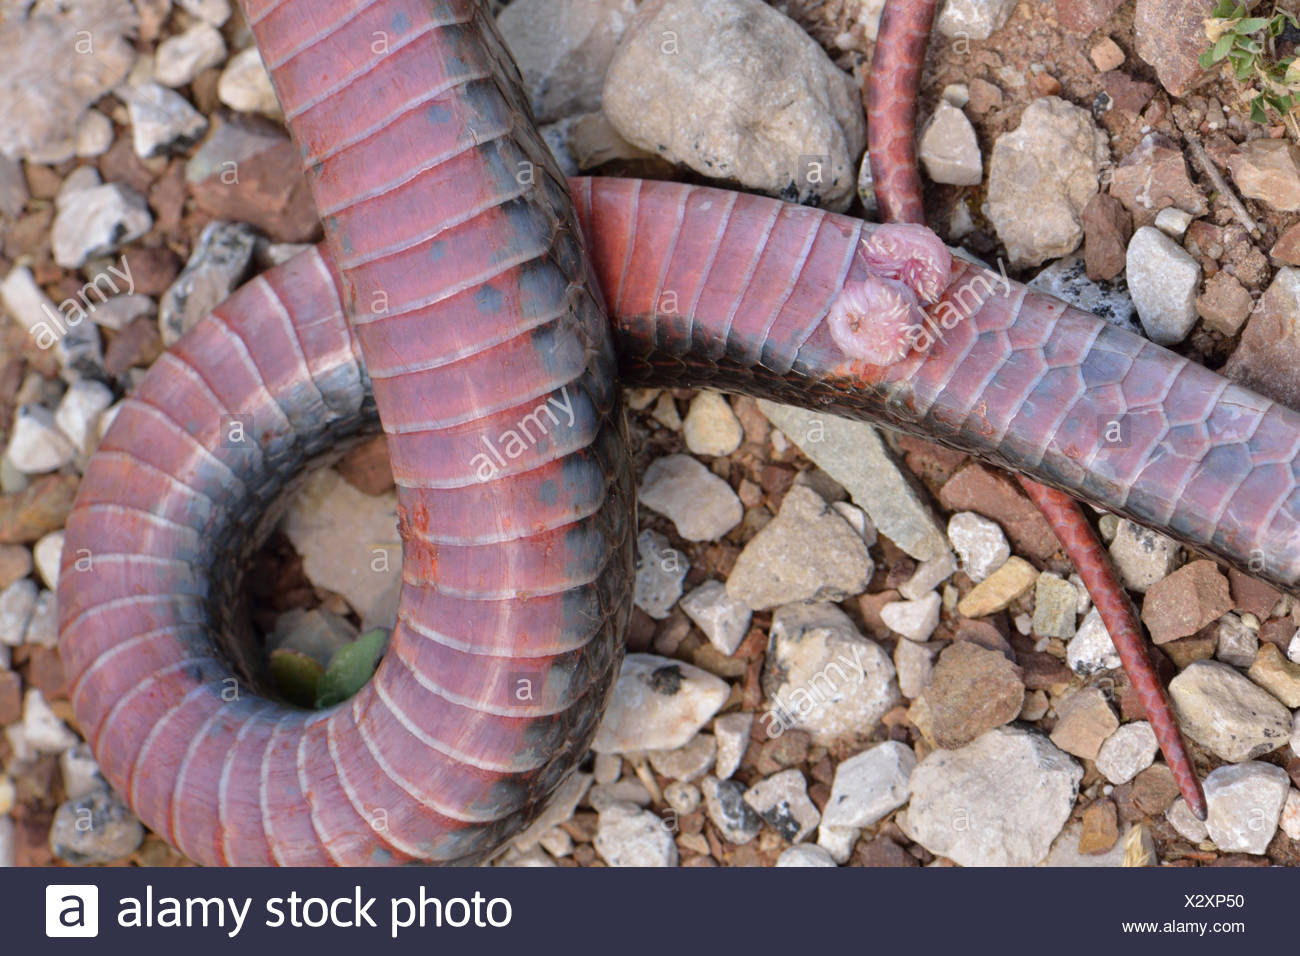 Genitals or hemipenis of a snake, Large Whip Snake (Dolichophis jugularis), Lycia, Turkey - Stock Image